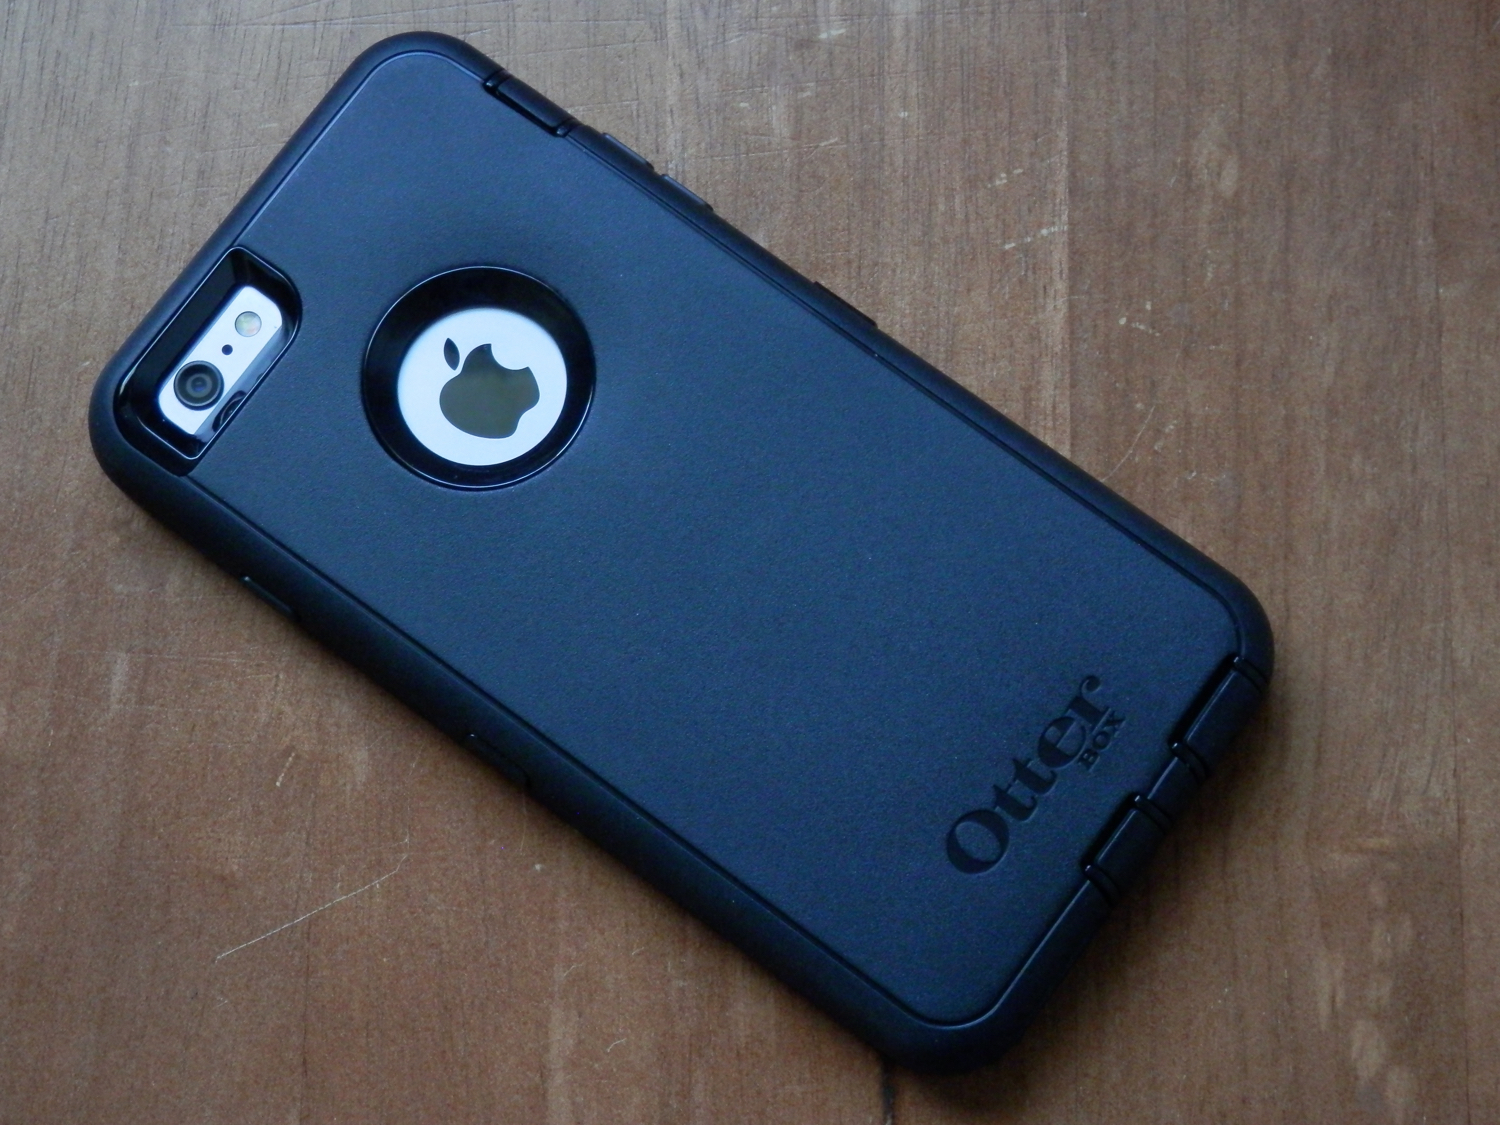 the latest d8aef 3c90d OtterBox iPhone cases shootout: which one should you get?